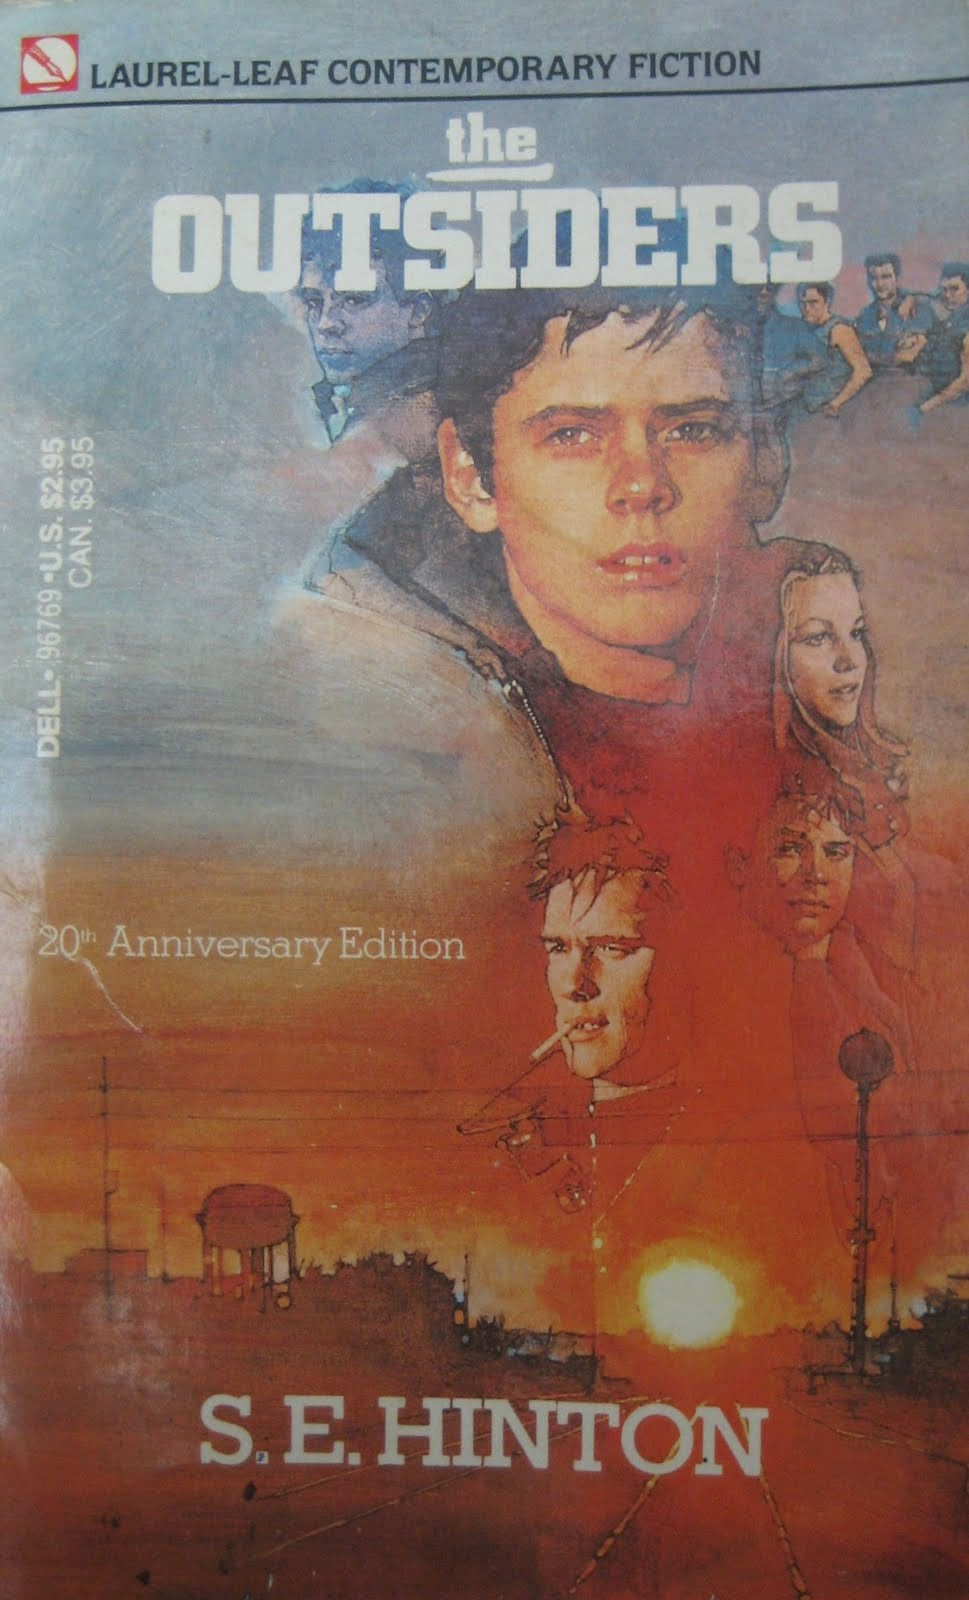 Oklahoma: The Outsiders by S.E. Hinton